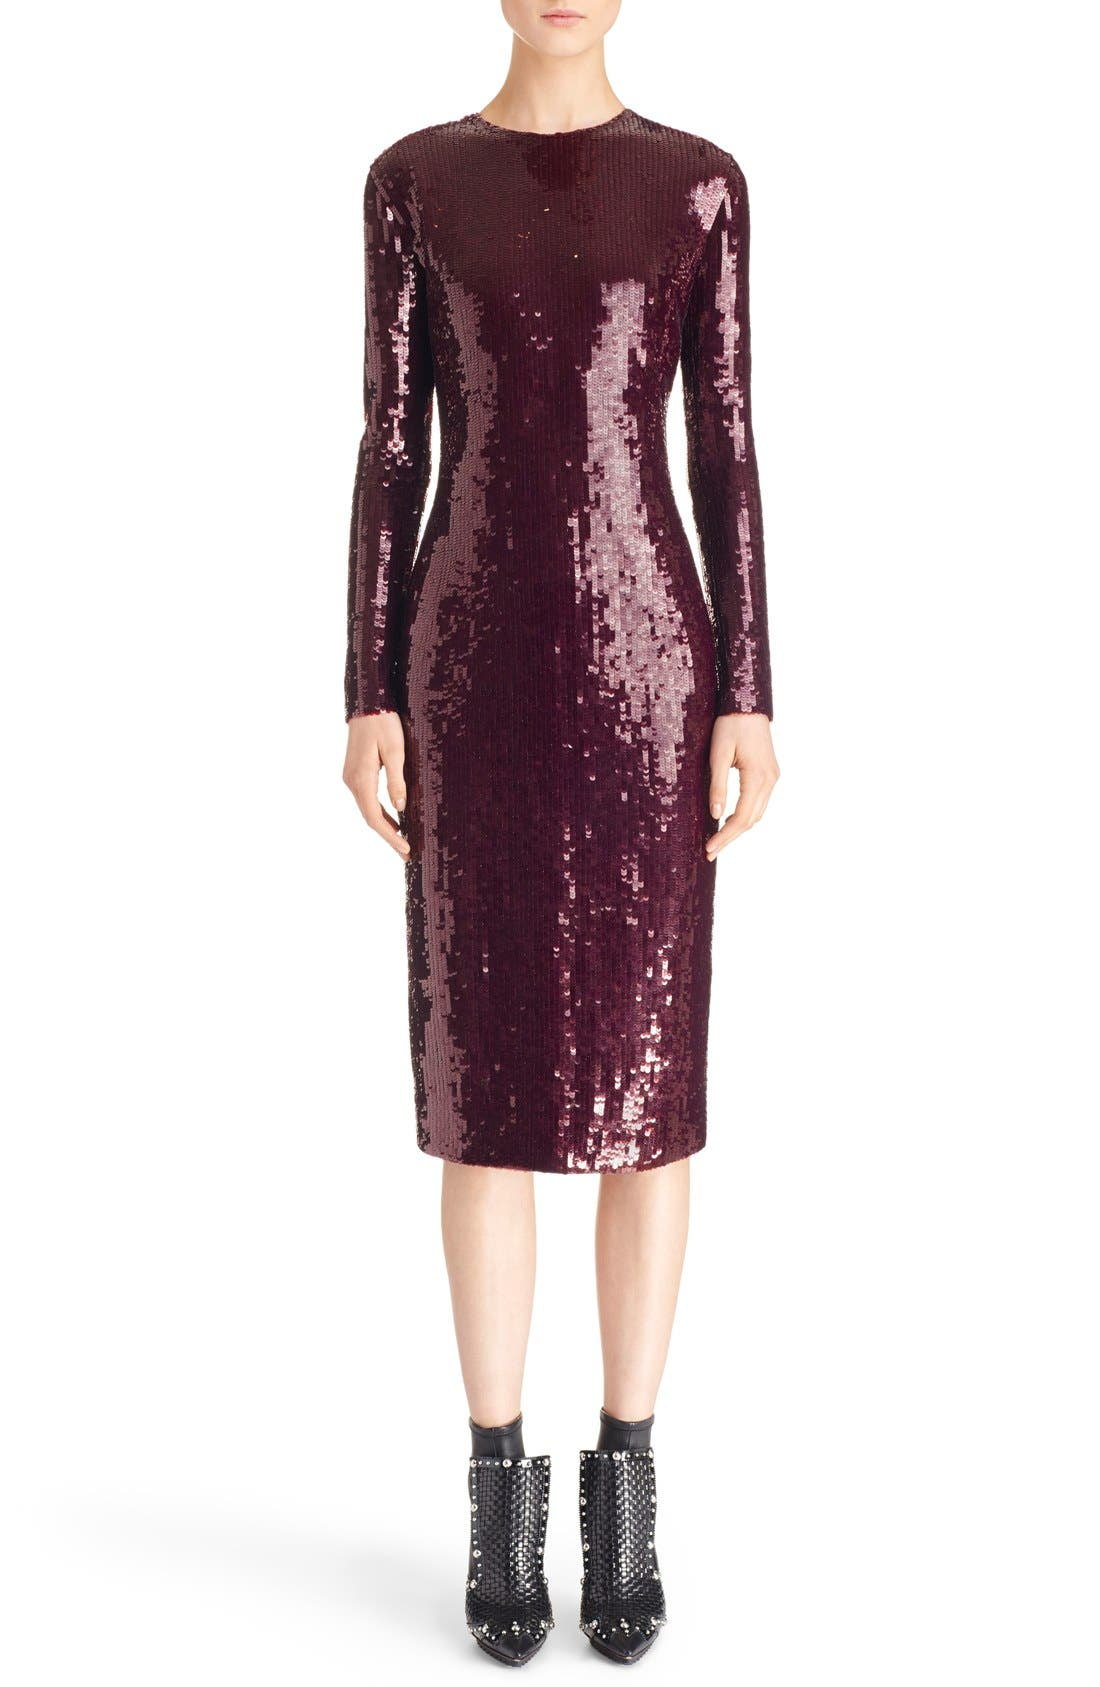 Sequin Sheath Dress, Main, color, 930